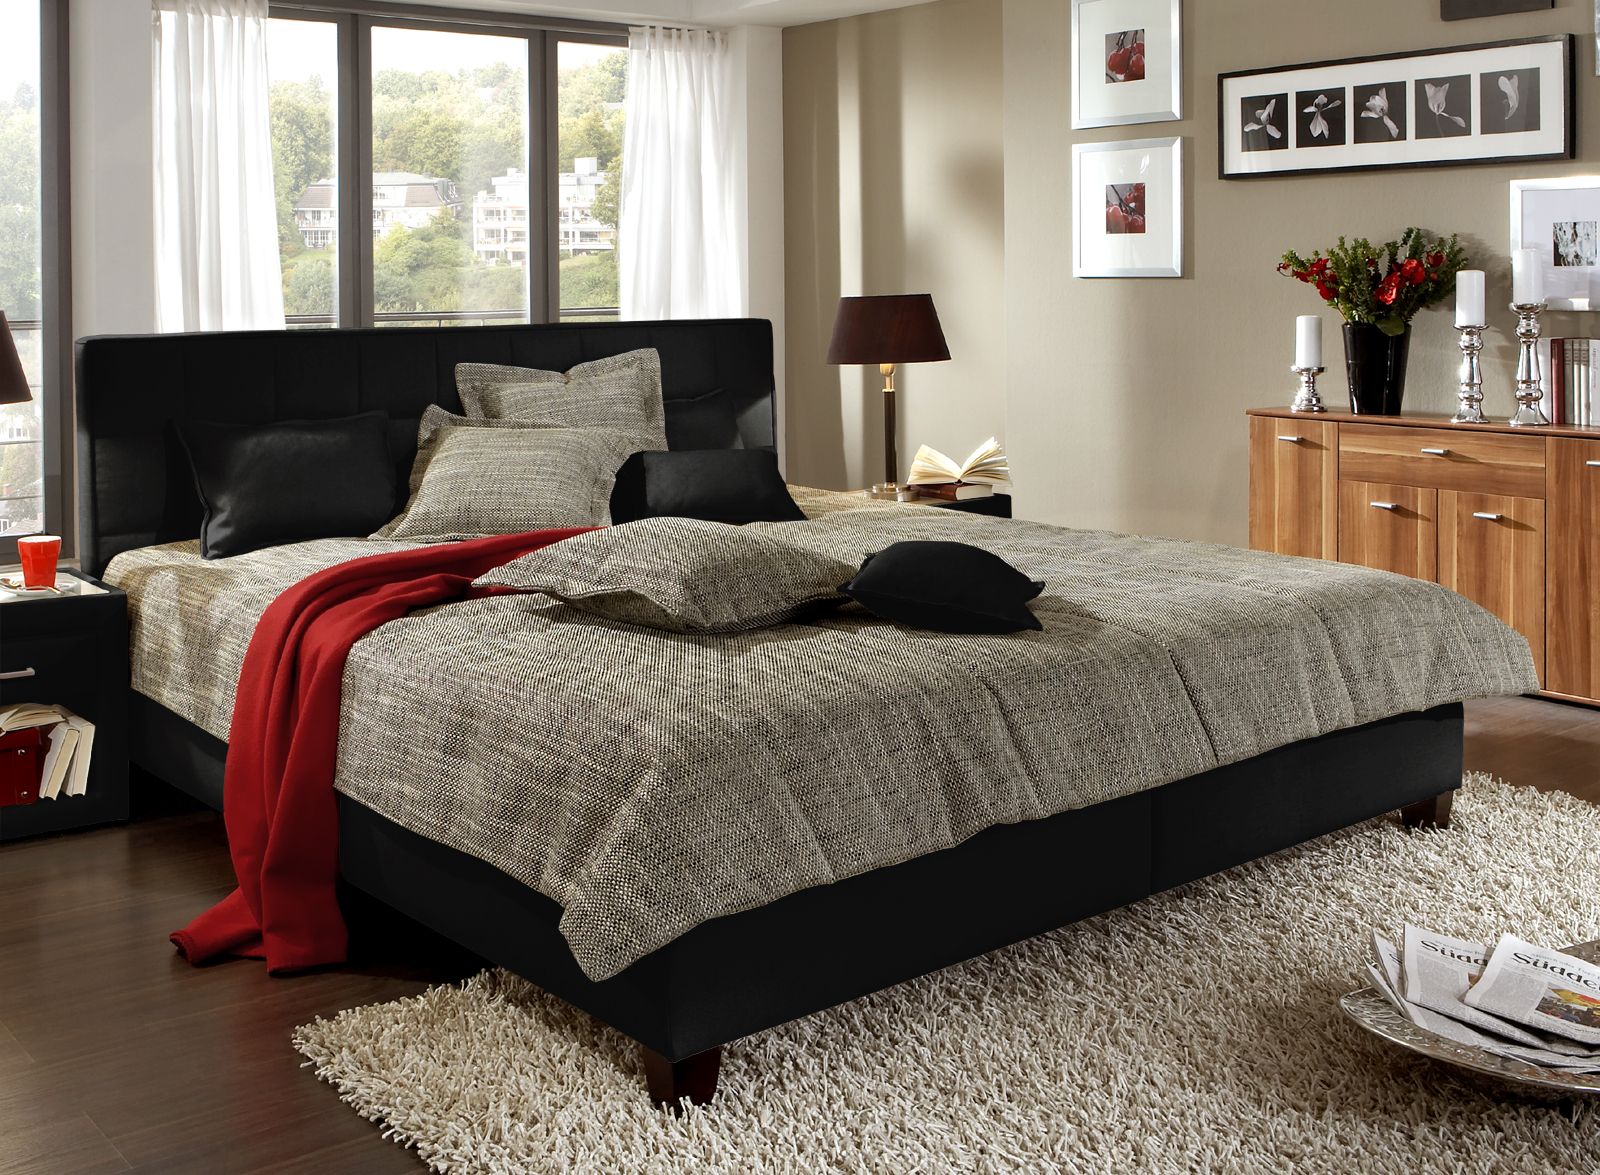 sch nes polsterbett mit ger umigem bettkasten sansone. Black Bedroom Furniture Sets. Home Design Ideas